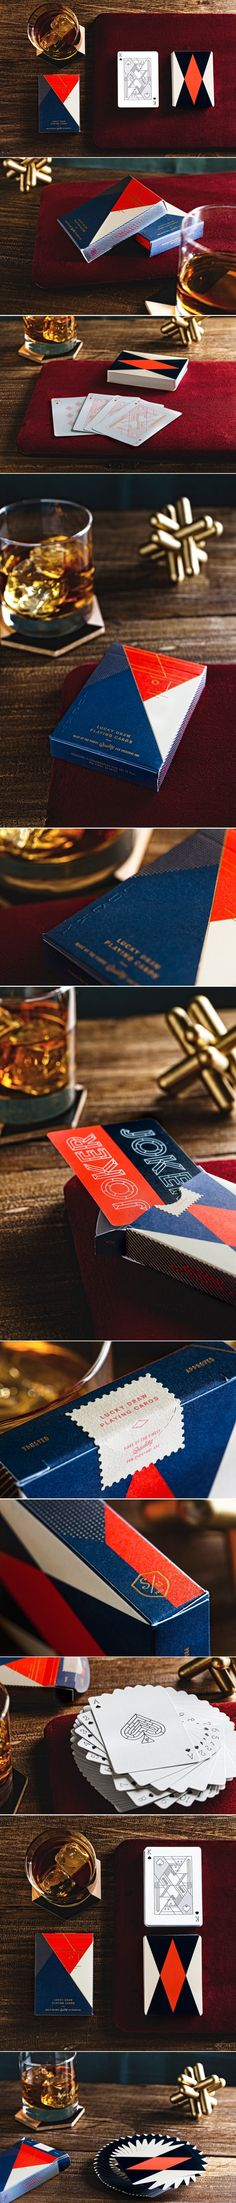 Get Lucky With Lucky Draw Playing Cards — The Dieline | Packaging & Branding Design & Innovation News